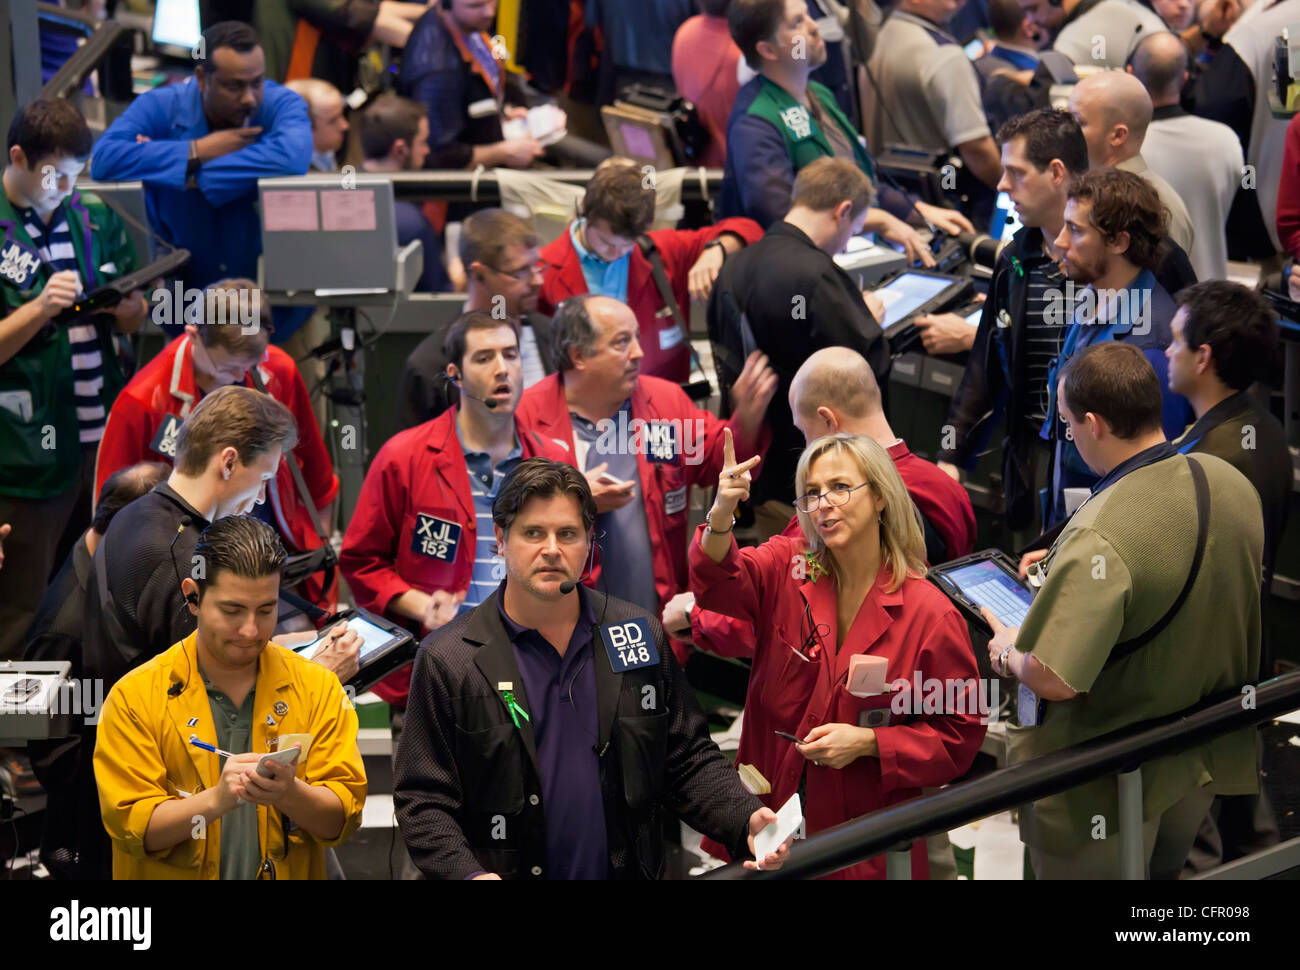 Chicago, Illinois - Commodities trading on the floor of the Chicago Mercantile Exchange. - Stock Image